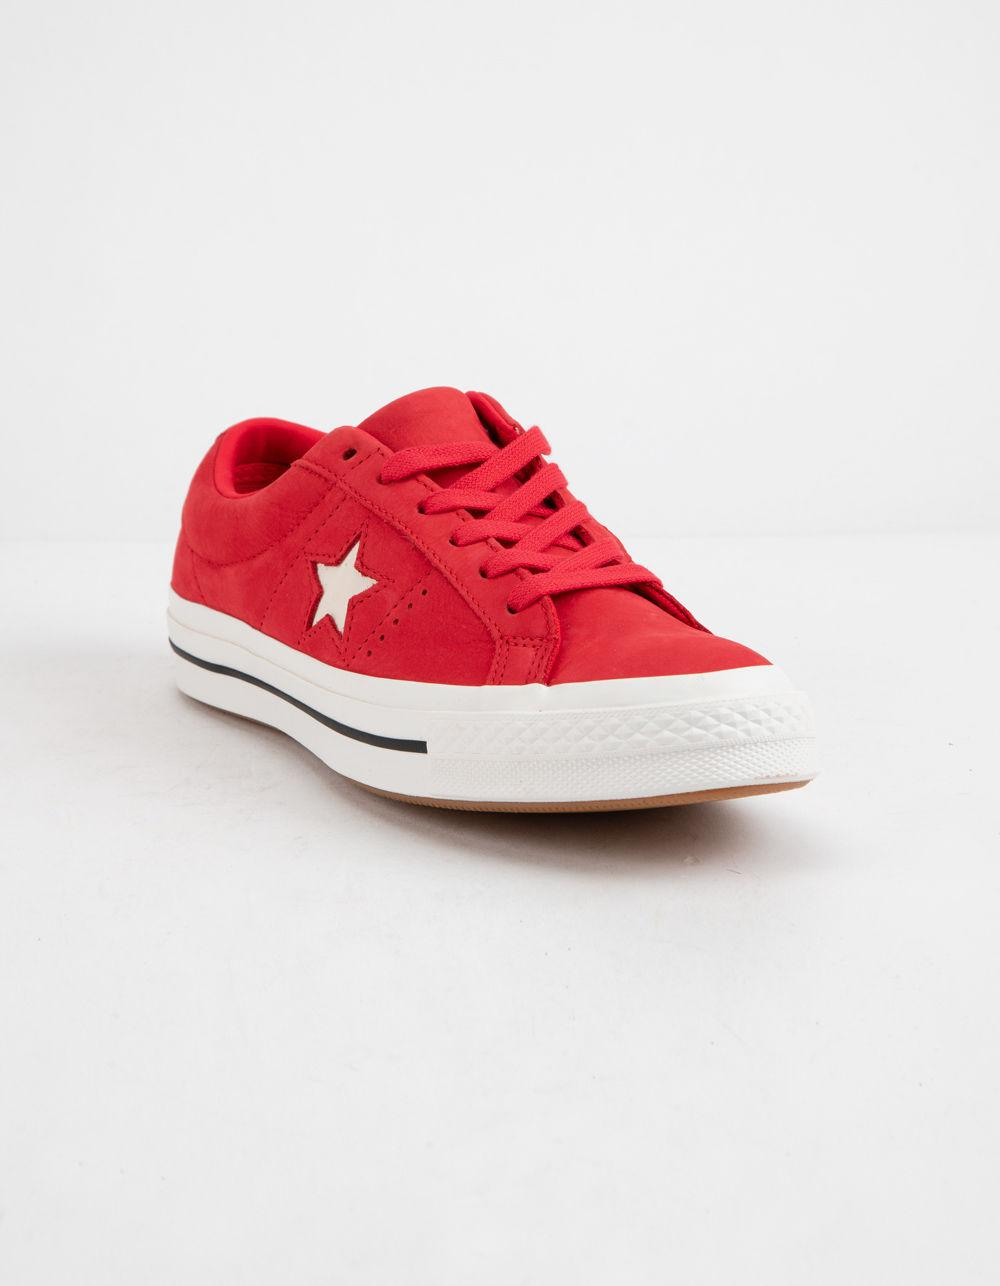 20fbf8b78556 Lyst - Converse One Star Ox Cherry Red   Vintage White Womens Low Top Shoes  in Red